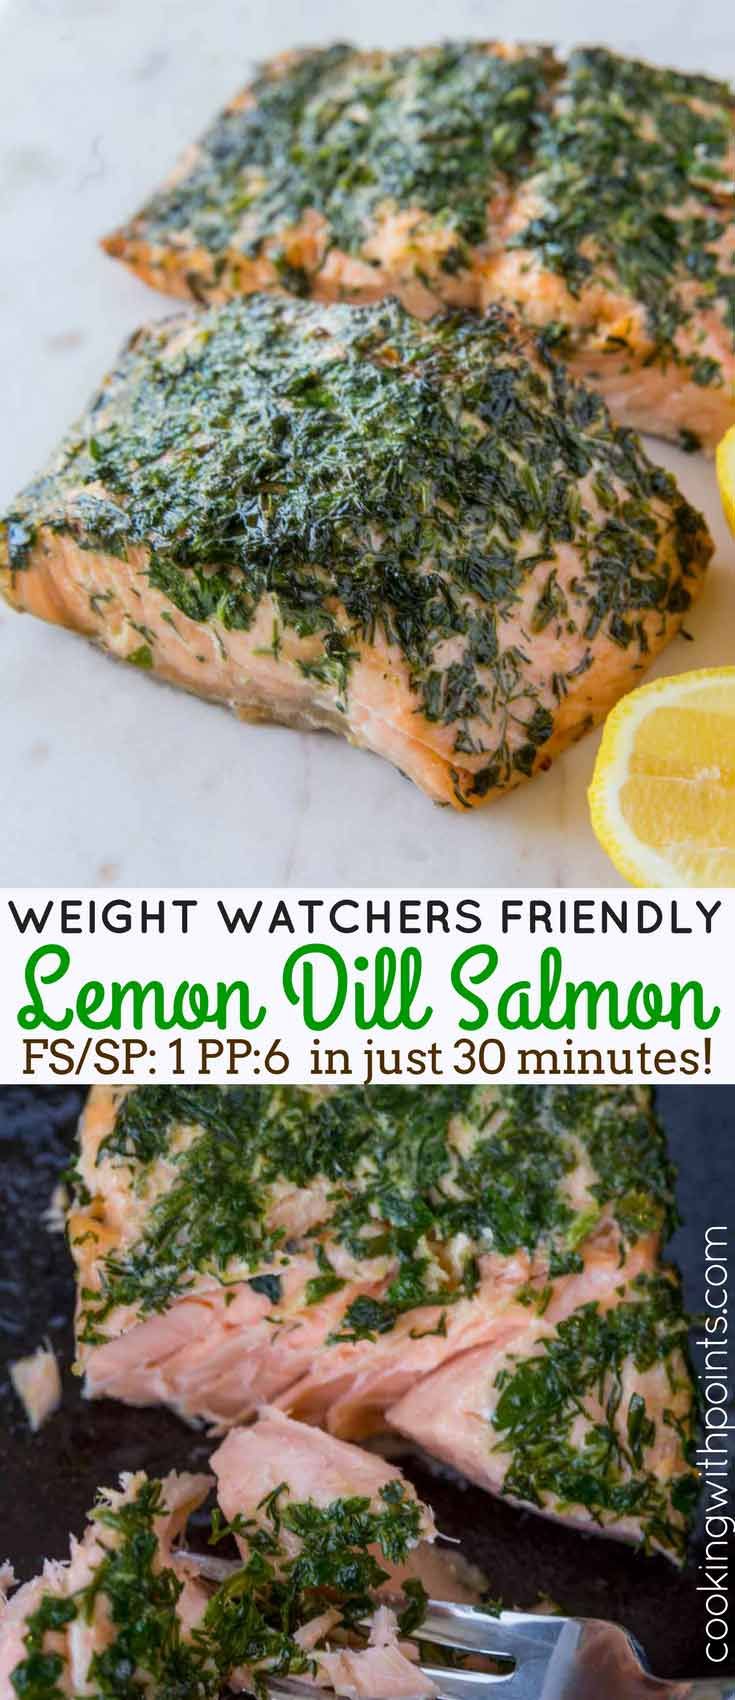 Lemon Dill Salmon Collage